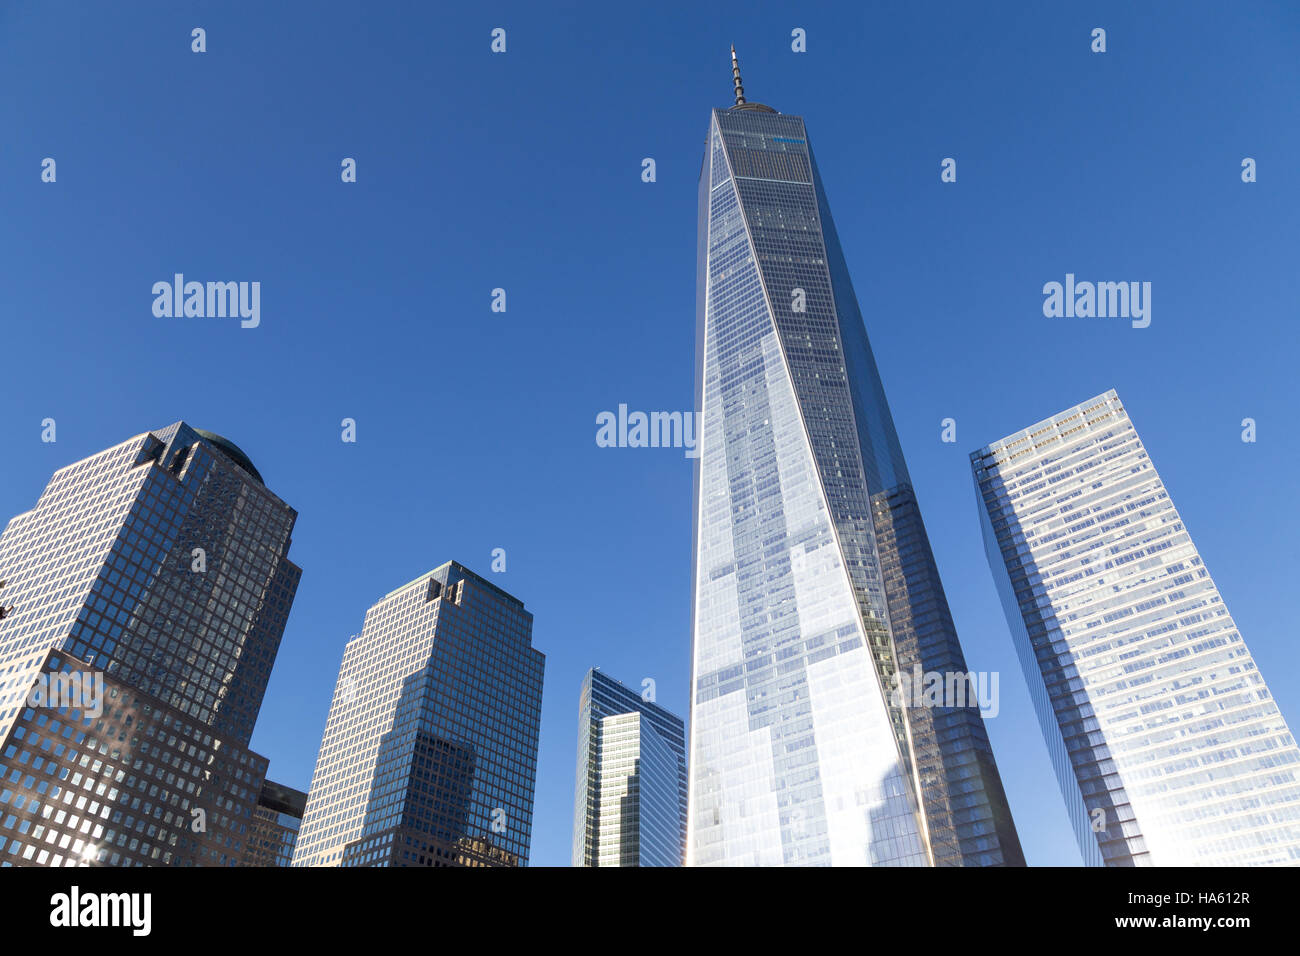 View of the World Trade Center in Lower Manhattan in New York City Stock Photo